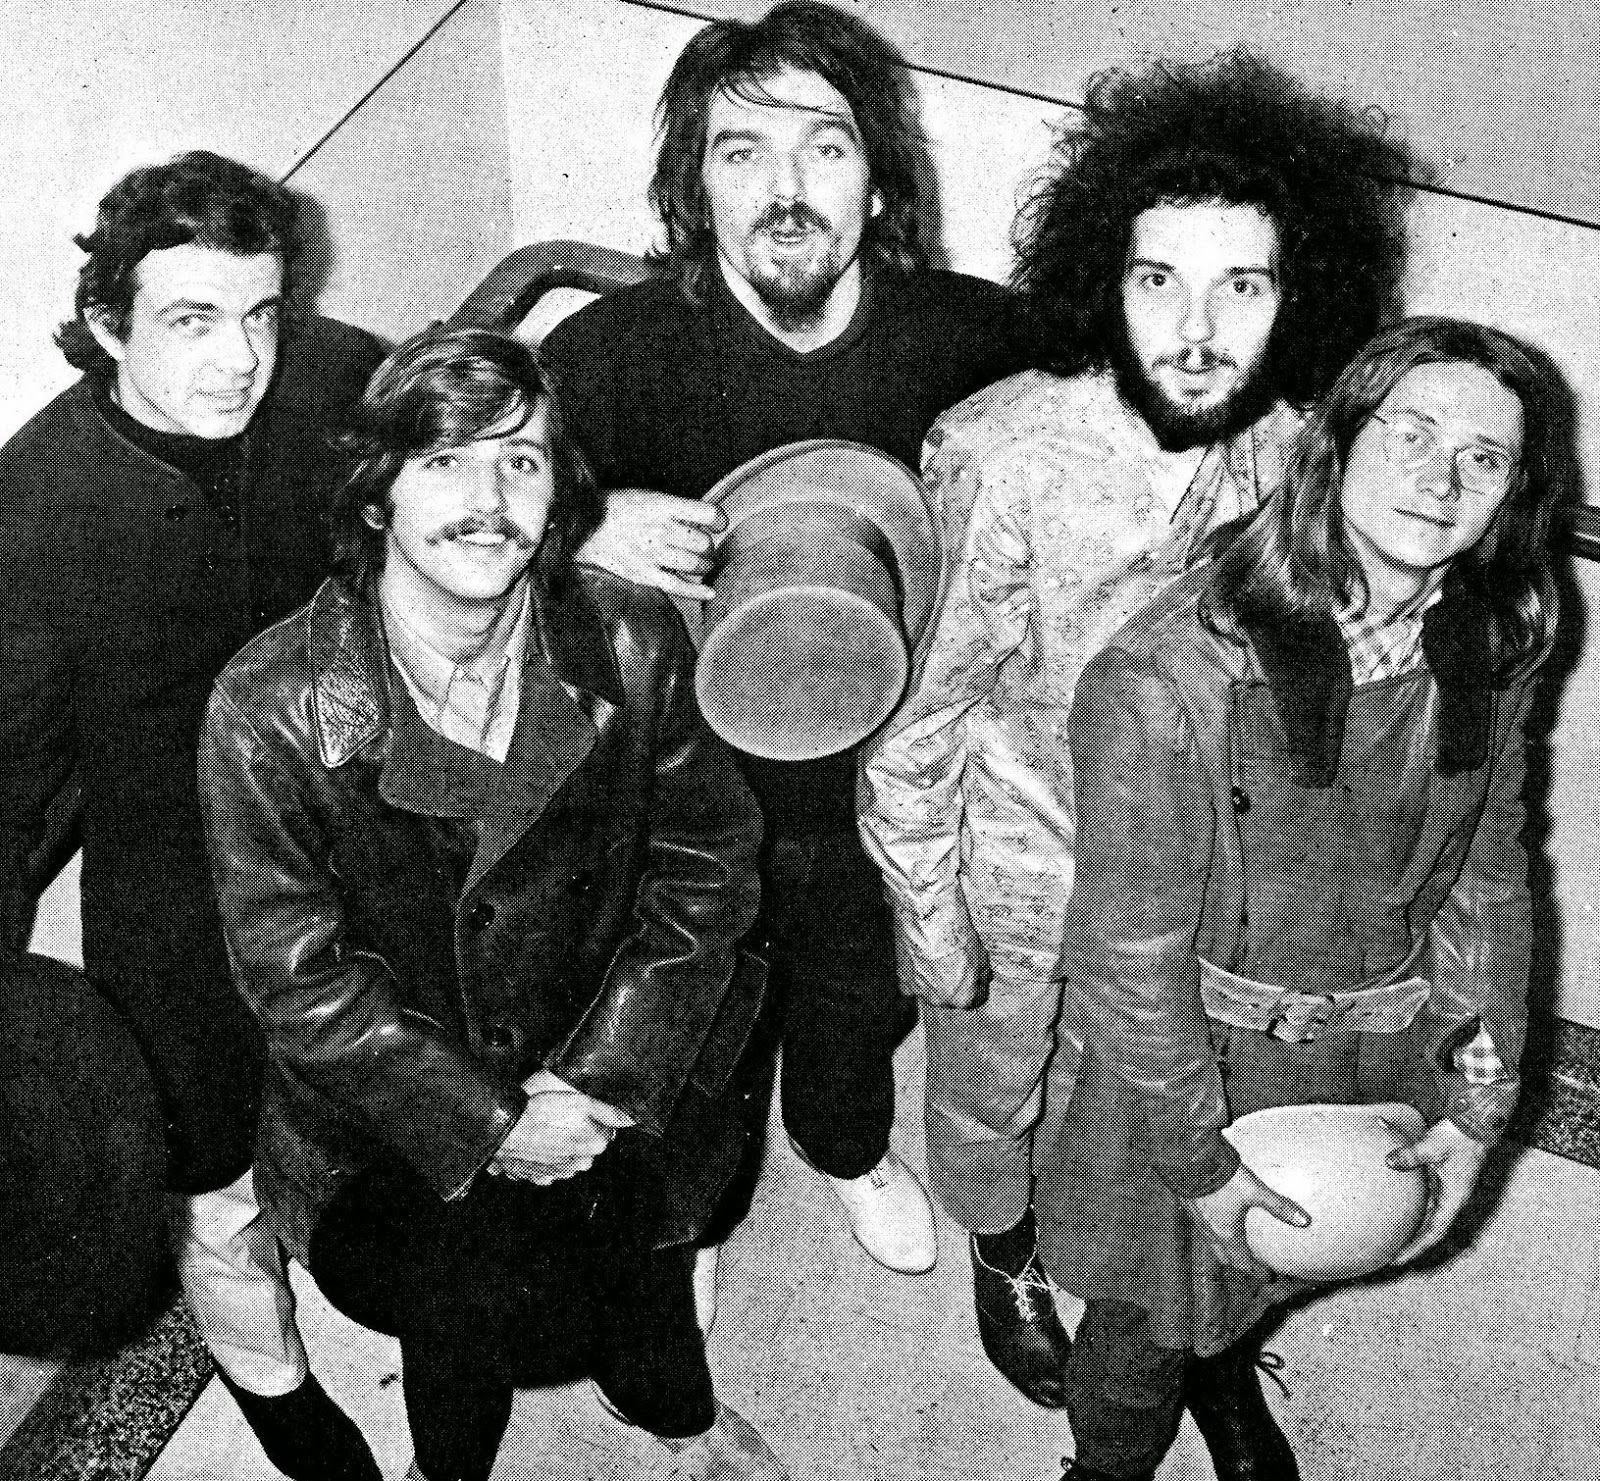 Captain Beefheart's Magic Band